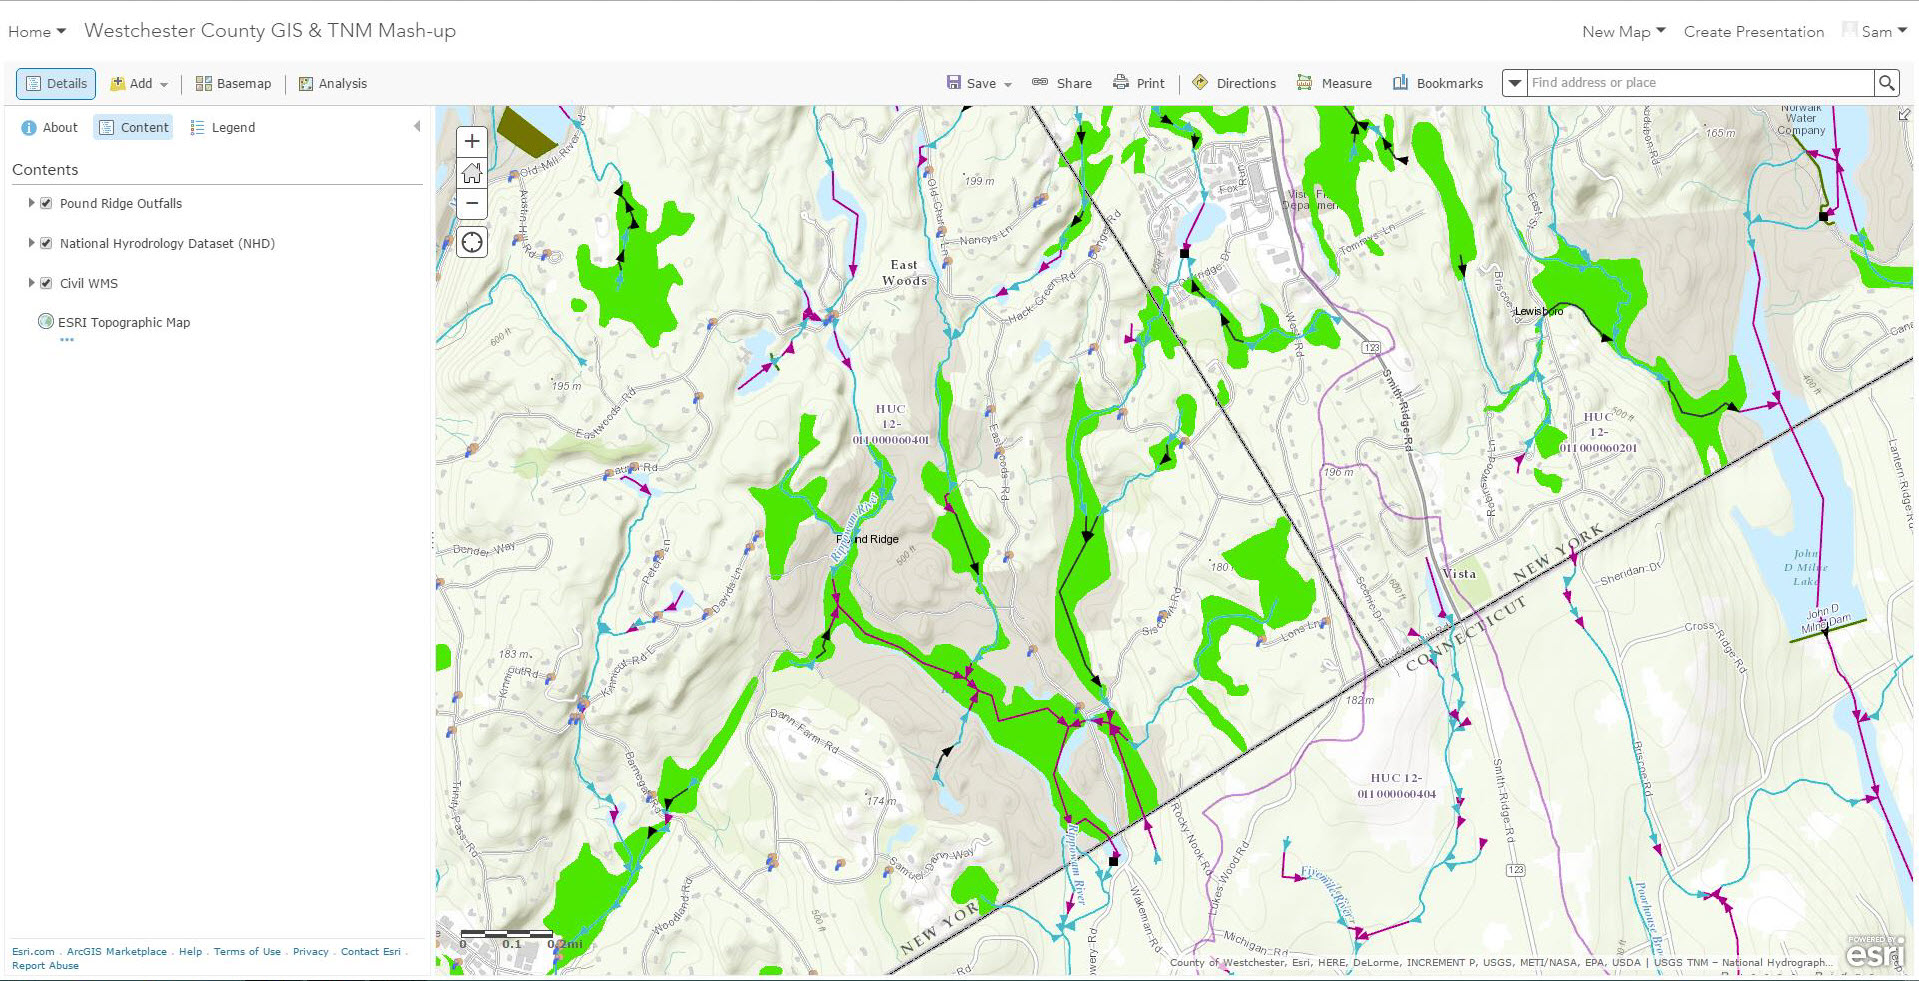 "Using the ArcGIS Online Viewer, users can ""mash-up"" map services from different sources. This example includes a WMS service being published by Westchester County GIS (highlighting wetlands in green), storm water outfalls in the Town of Pound Ridge (adjacent the State of Connecticut border), and hydrology flow data from an NHD map service published through the National Map."